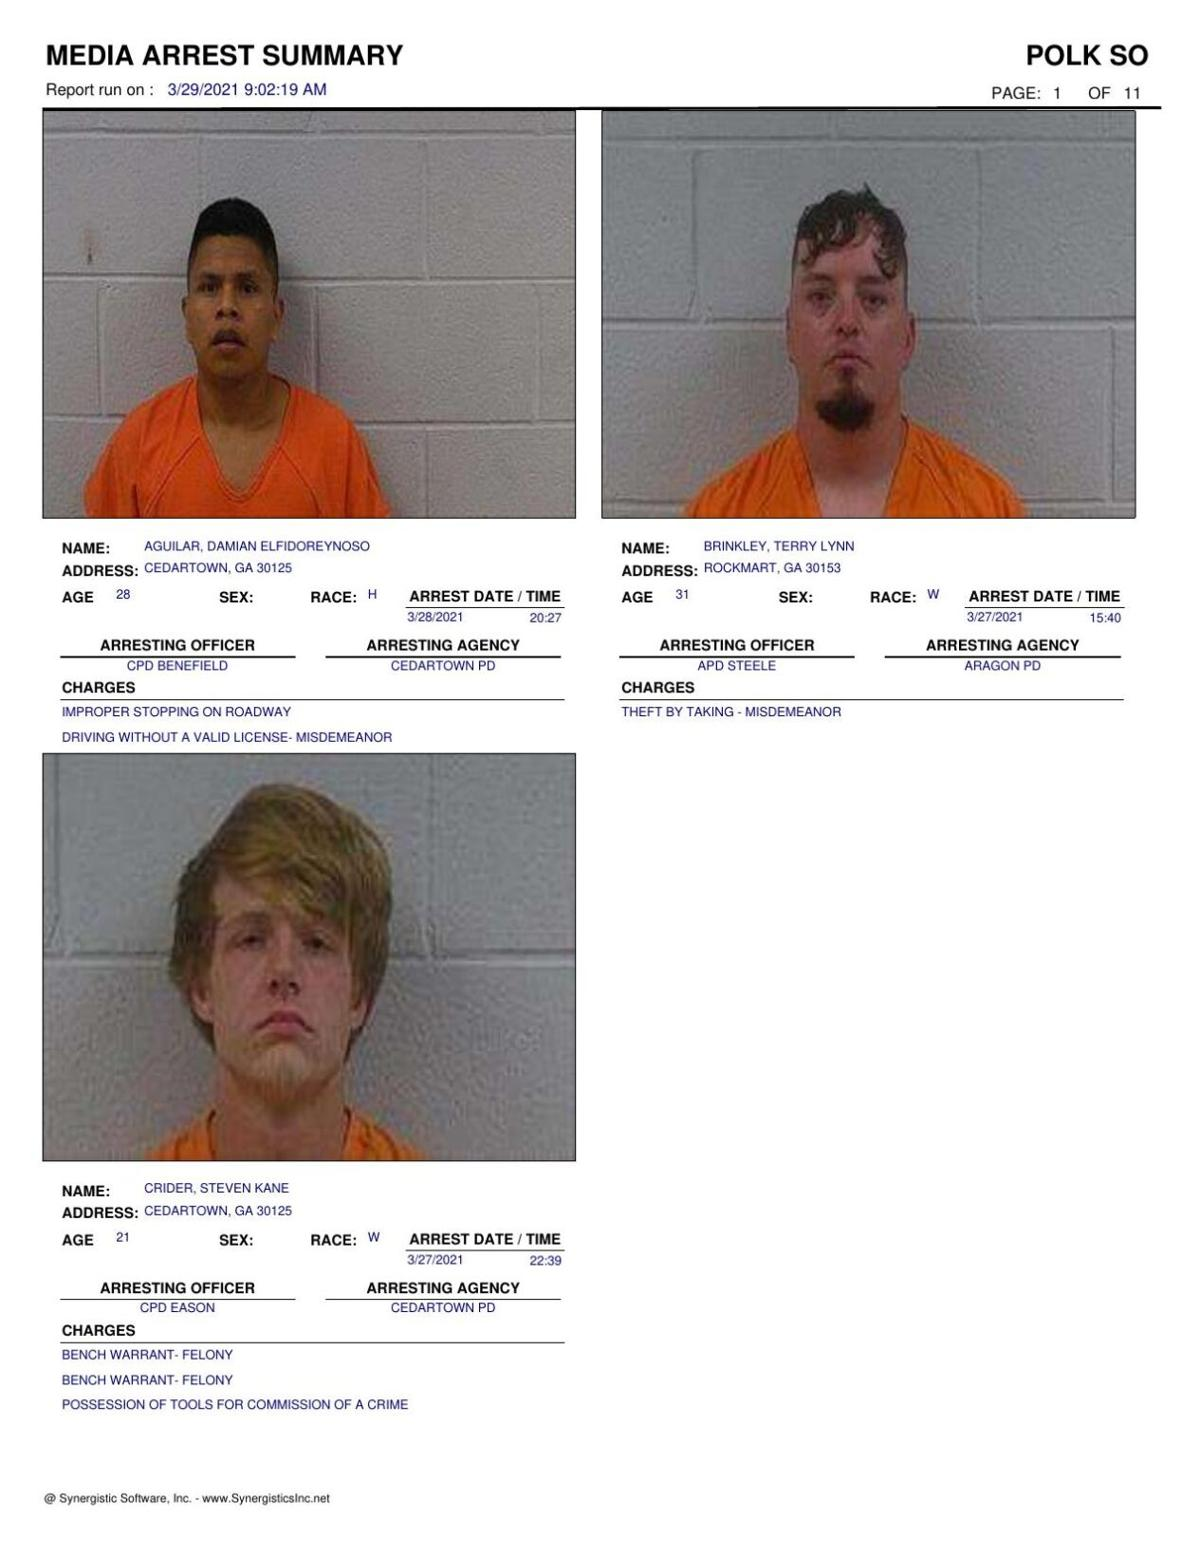 Polk County Jail Report for Monday, March 29